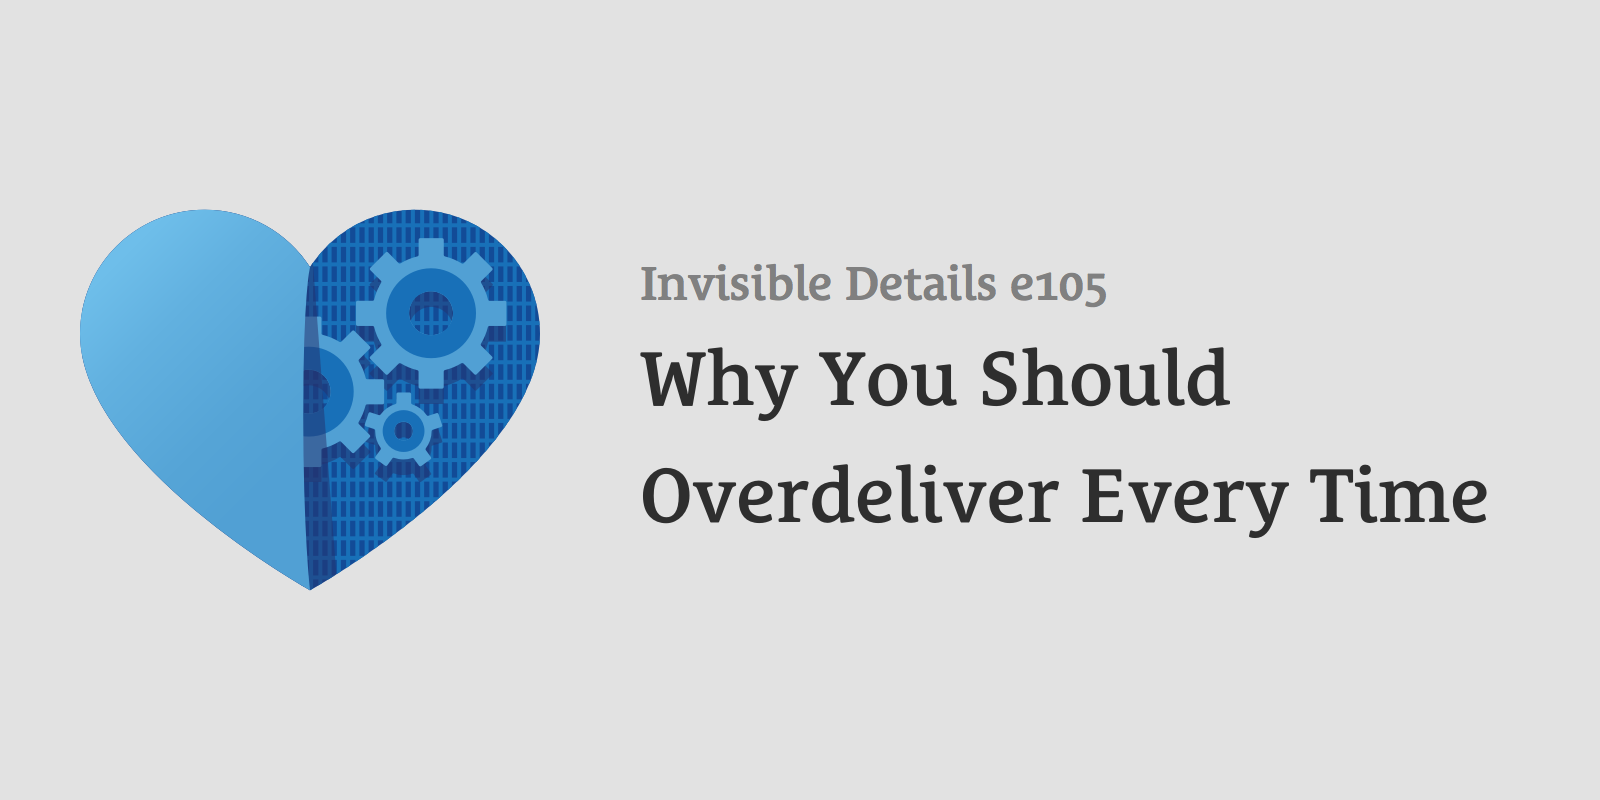 Why You Should Overdeliver Every Time